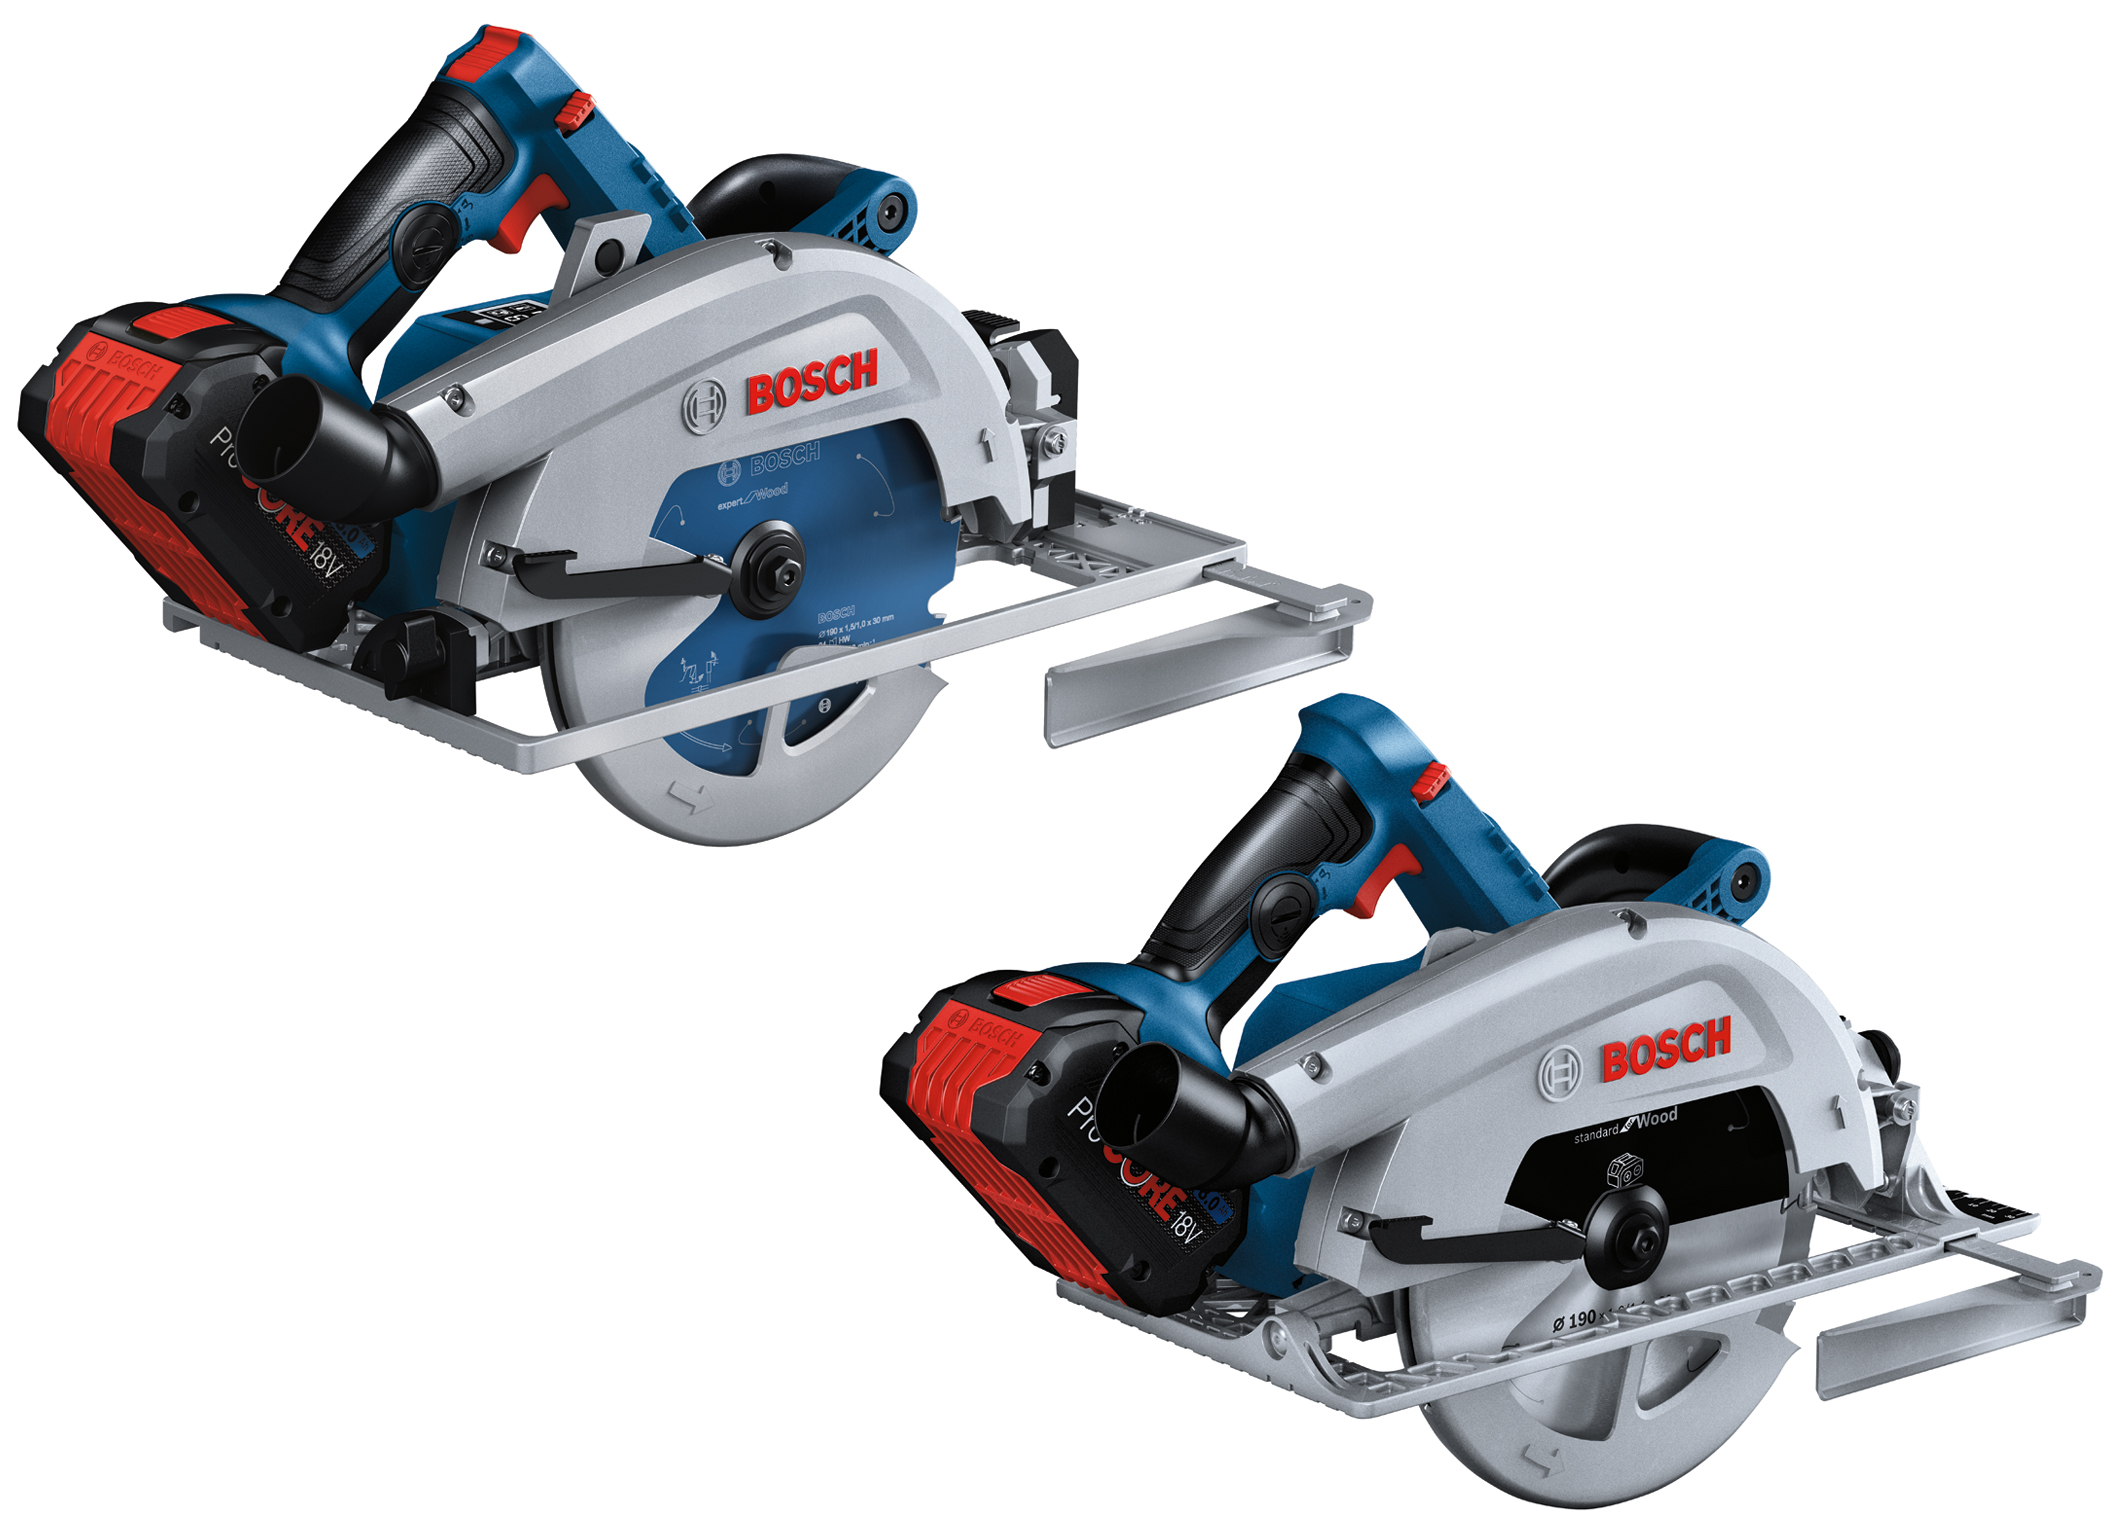 New flagships for woodworking: Cordless GKS 18V-68 GC und GKS 18V-68 C Professional hand-held circular saws from Bosch